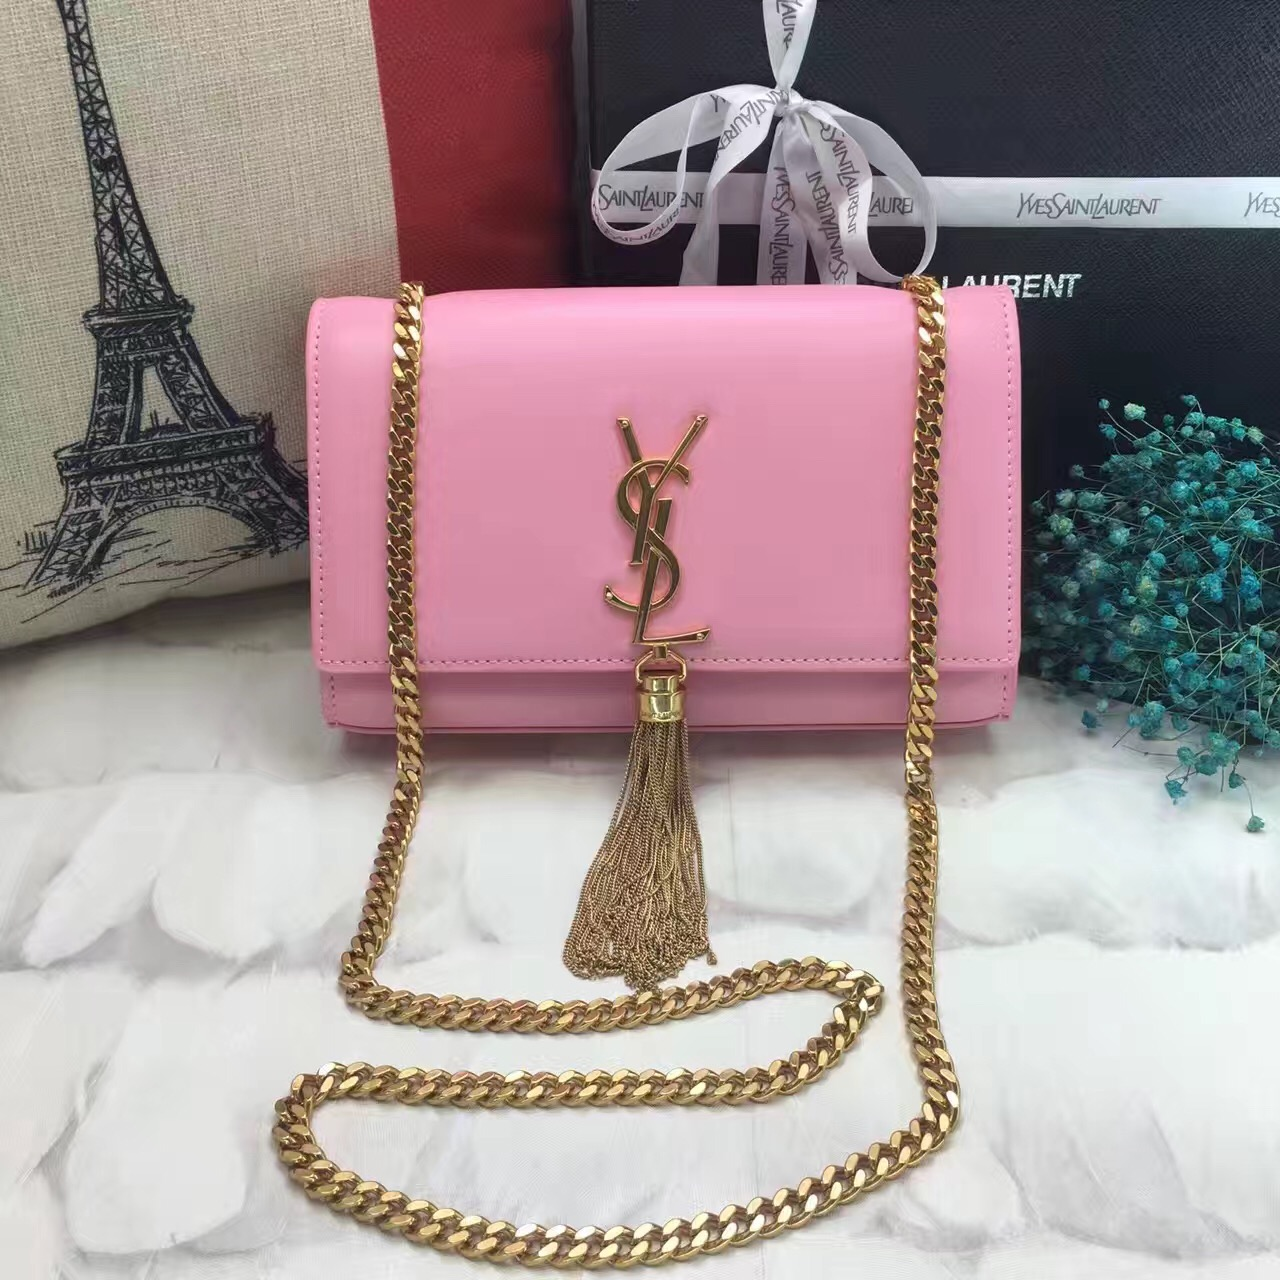 YSL Tassel Chain Bag 22cm Smooth Leather Pink Gold